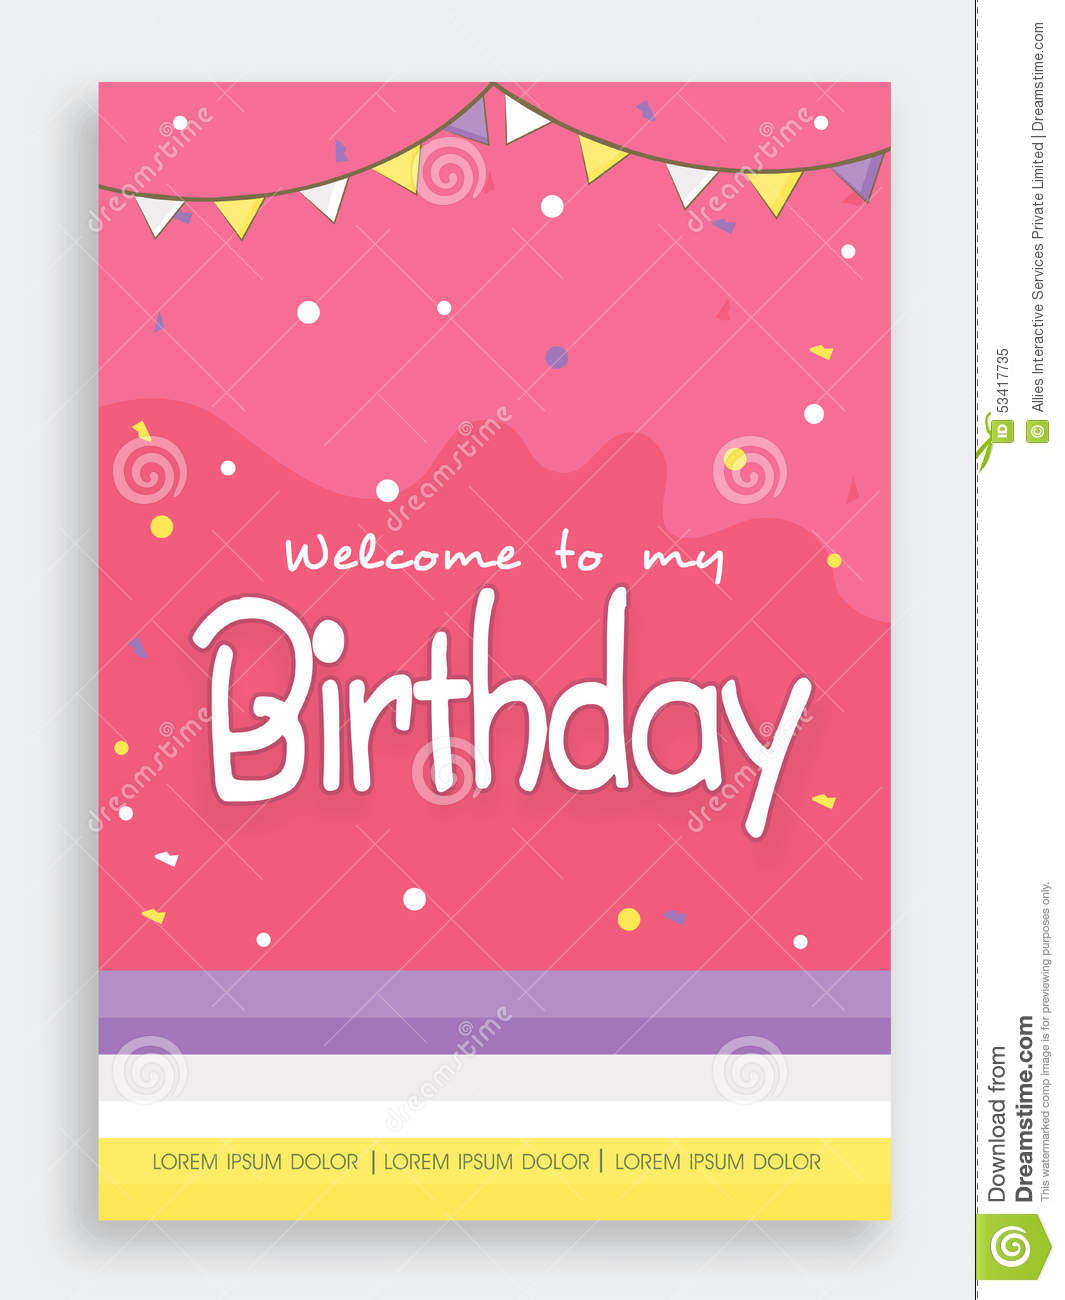 Invitation card design for birthday party stock illustration invitation card design for birthday party filmwisefo